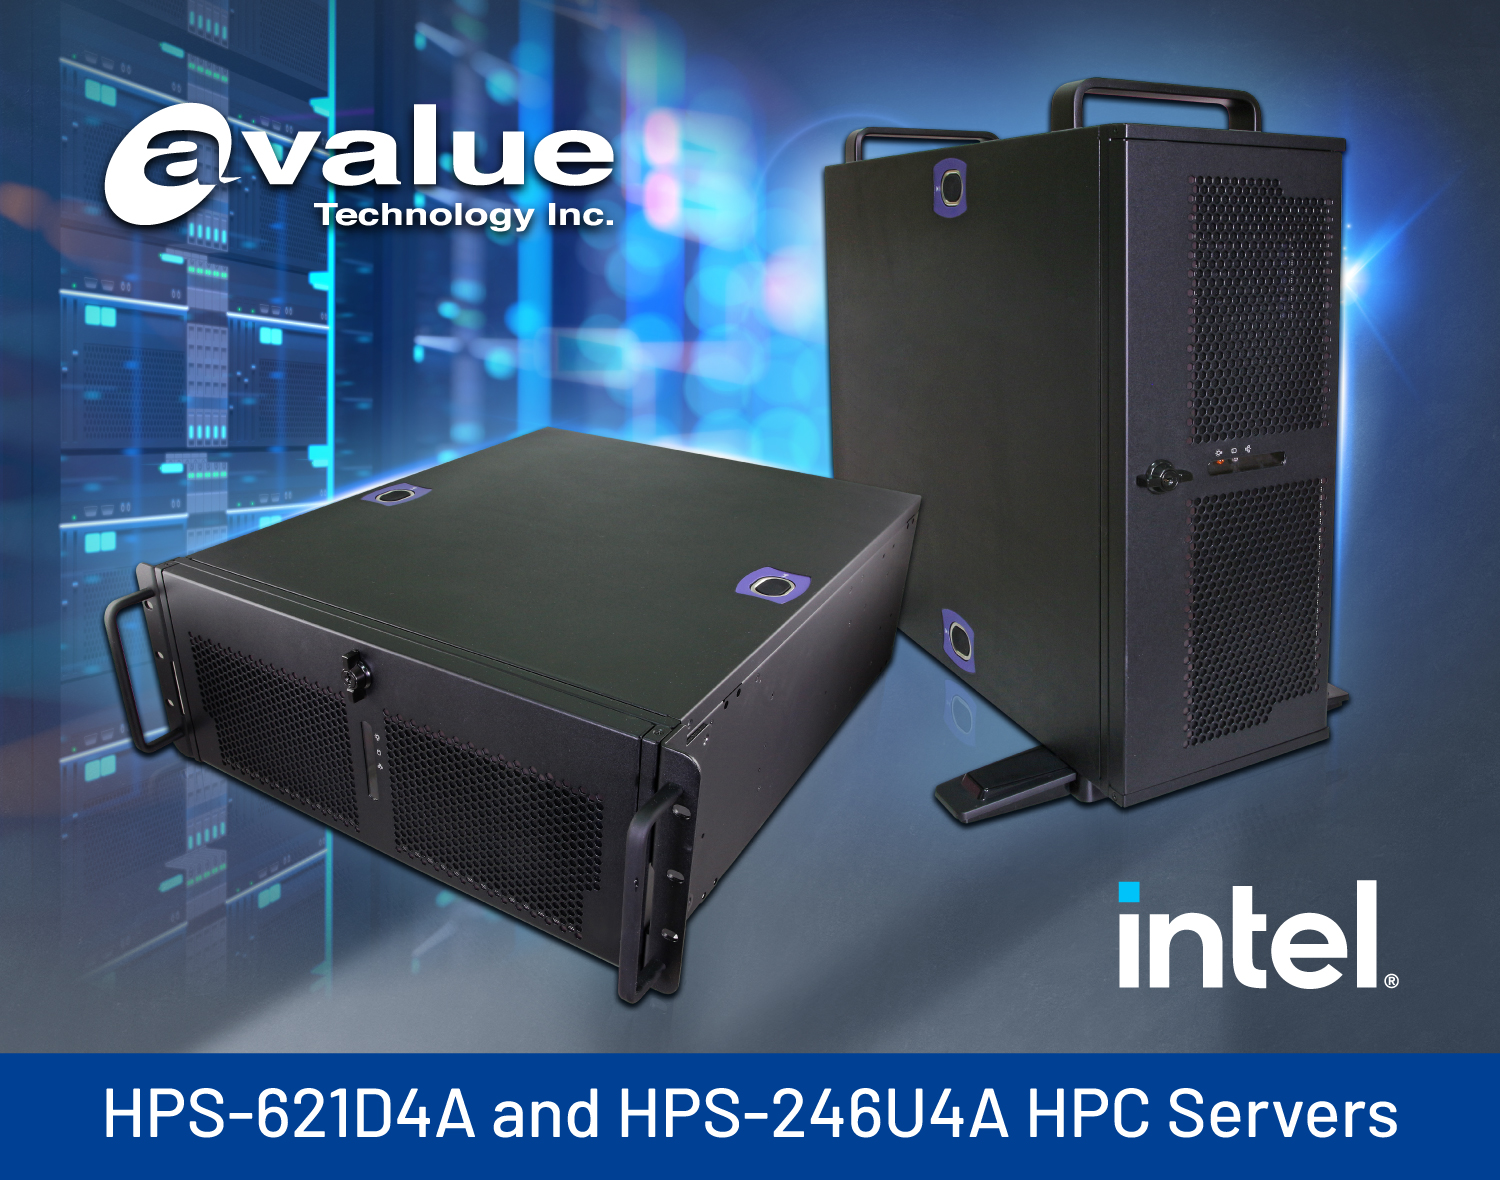 Avalue Launches HPS-621D4A and HPS-246U4A HPC Servers with Flexible 4U Rackmount / Tower Design, - Designed for a variety of applications, supporting Intel® Xeon® Scalable processors